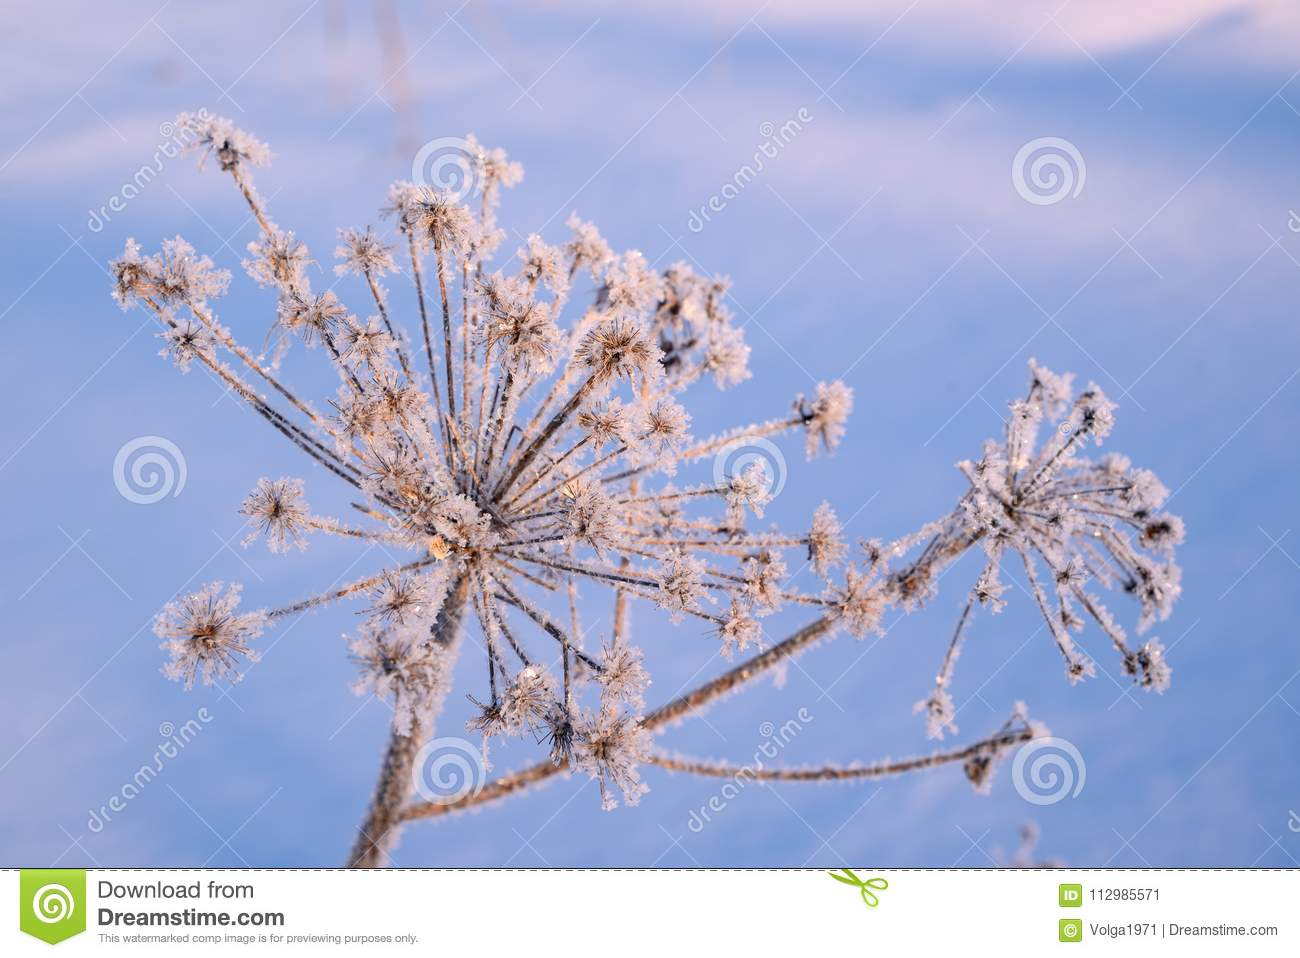 Hoarfrost on a dry inflorescence